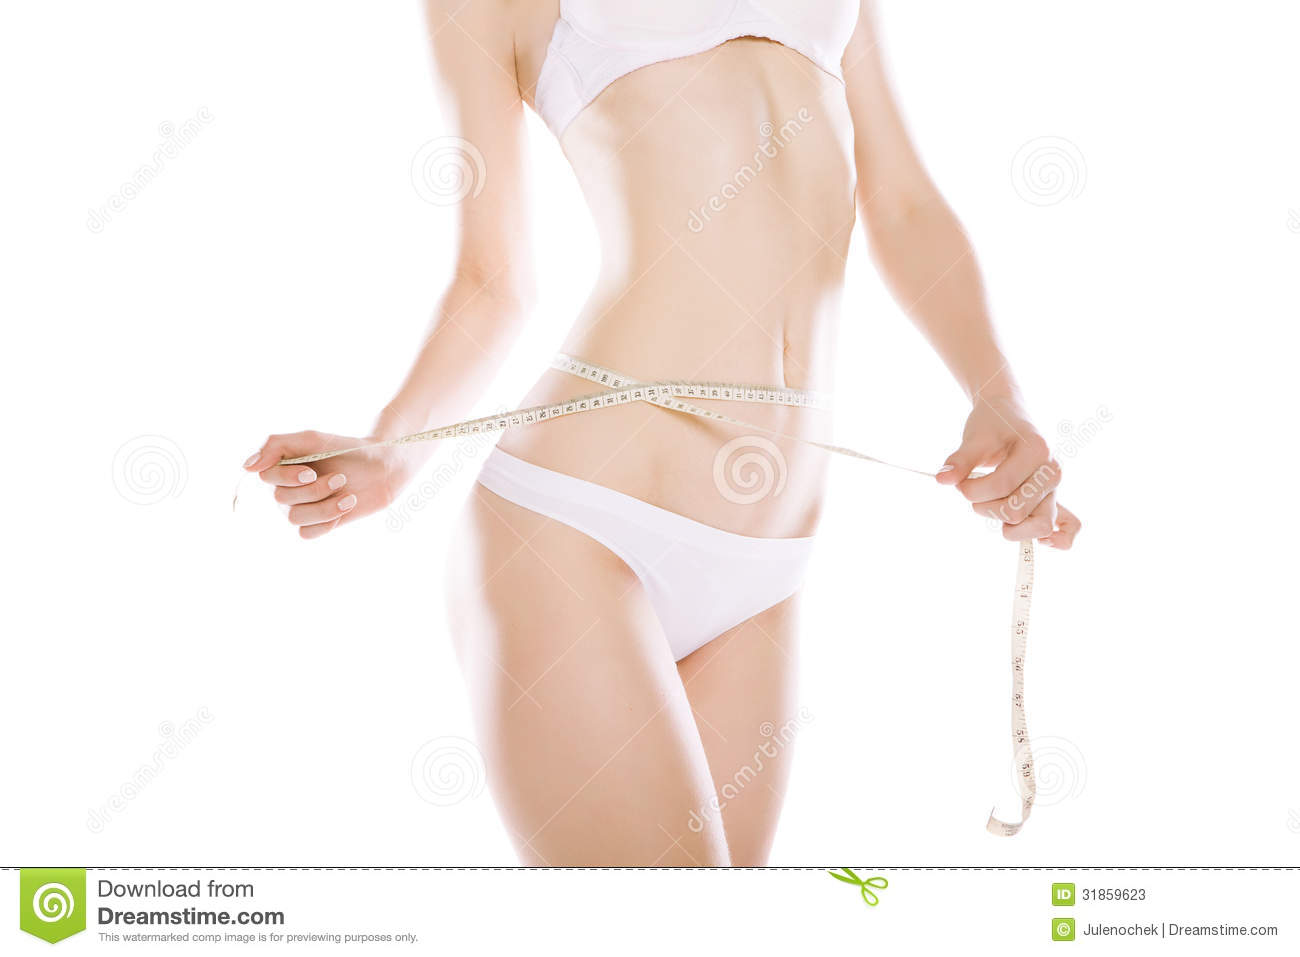 Jun 08,  · Wrap the measuring tape around your waist. Stand up straight and breathe normally. Hold the end of the tape measure at your navel and circle it around your back to the front of your waist%(22).